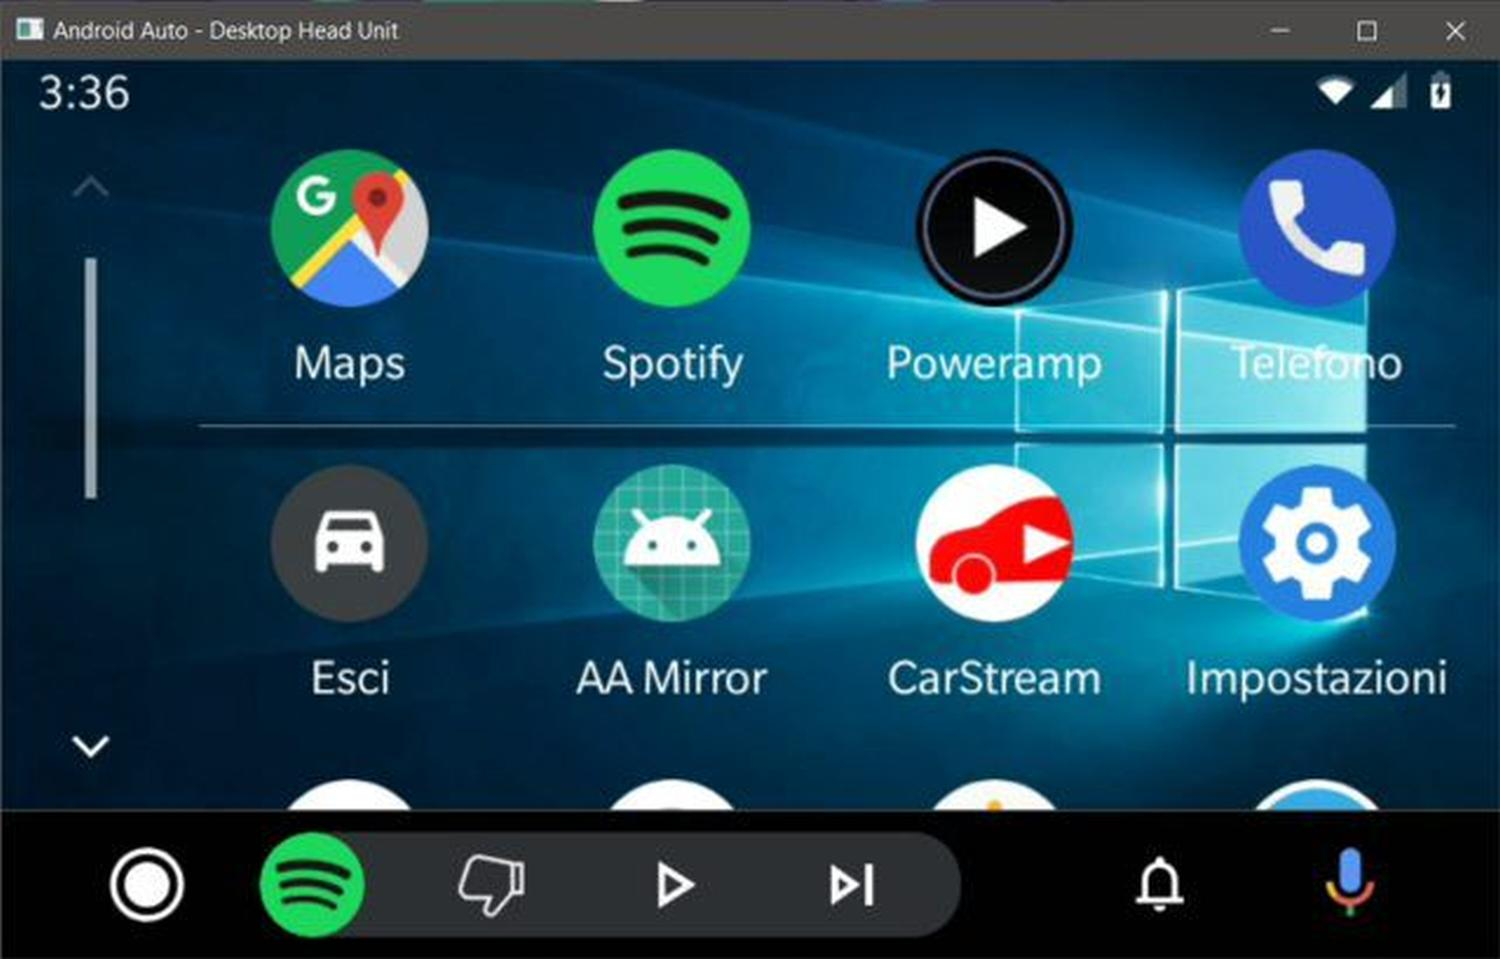 android auto wallpaper windows 10